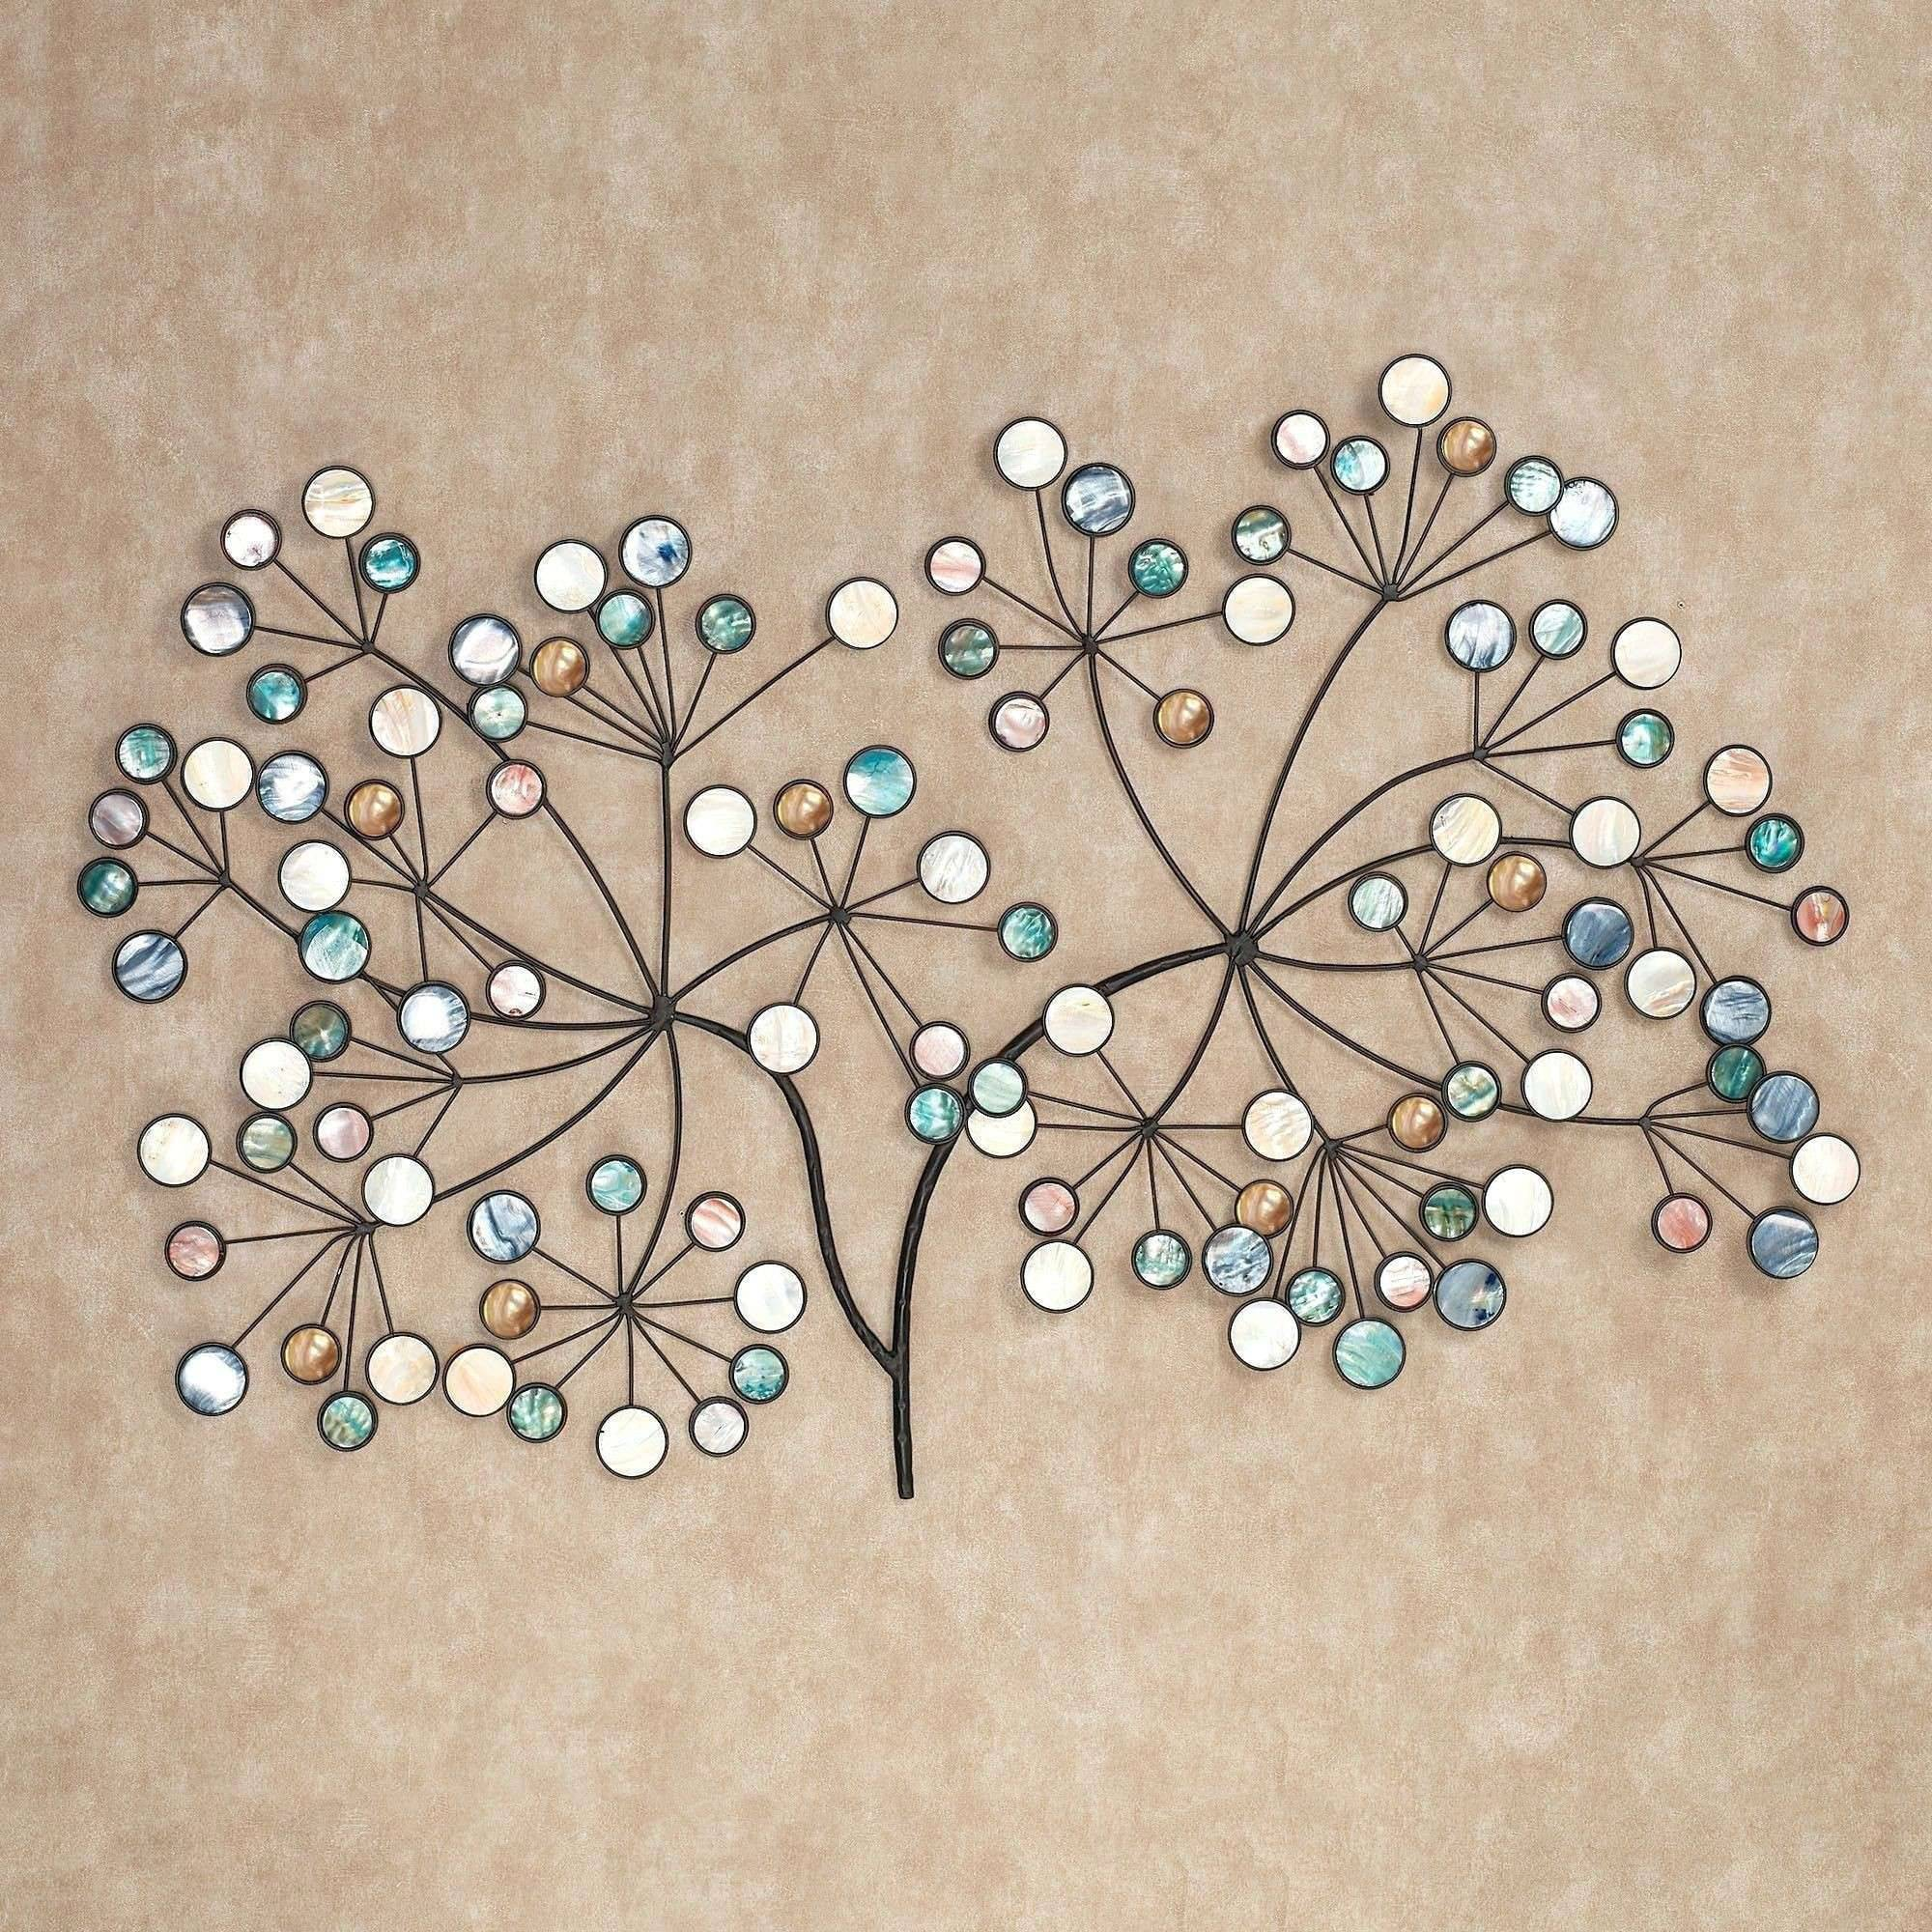 metal wall art panels fresh 1 kirkland wall decor home design 0d to ceramic flowers wall art of ceramic flowers wall art